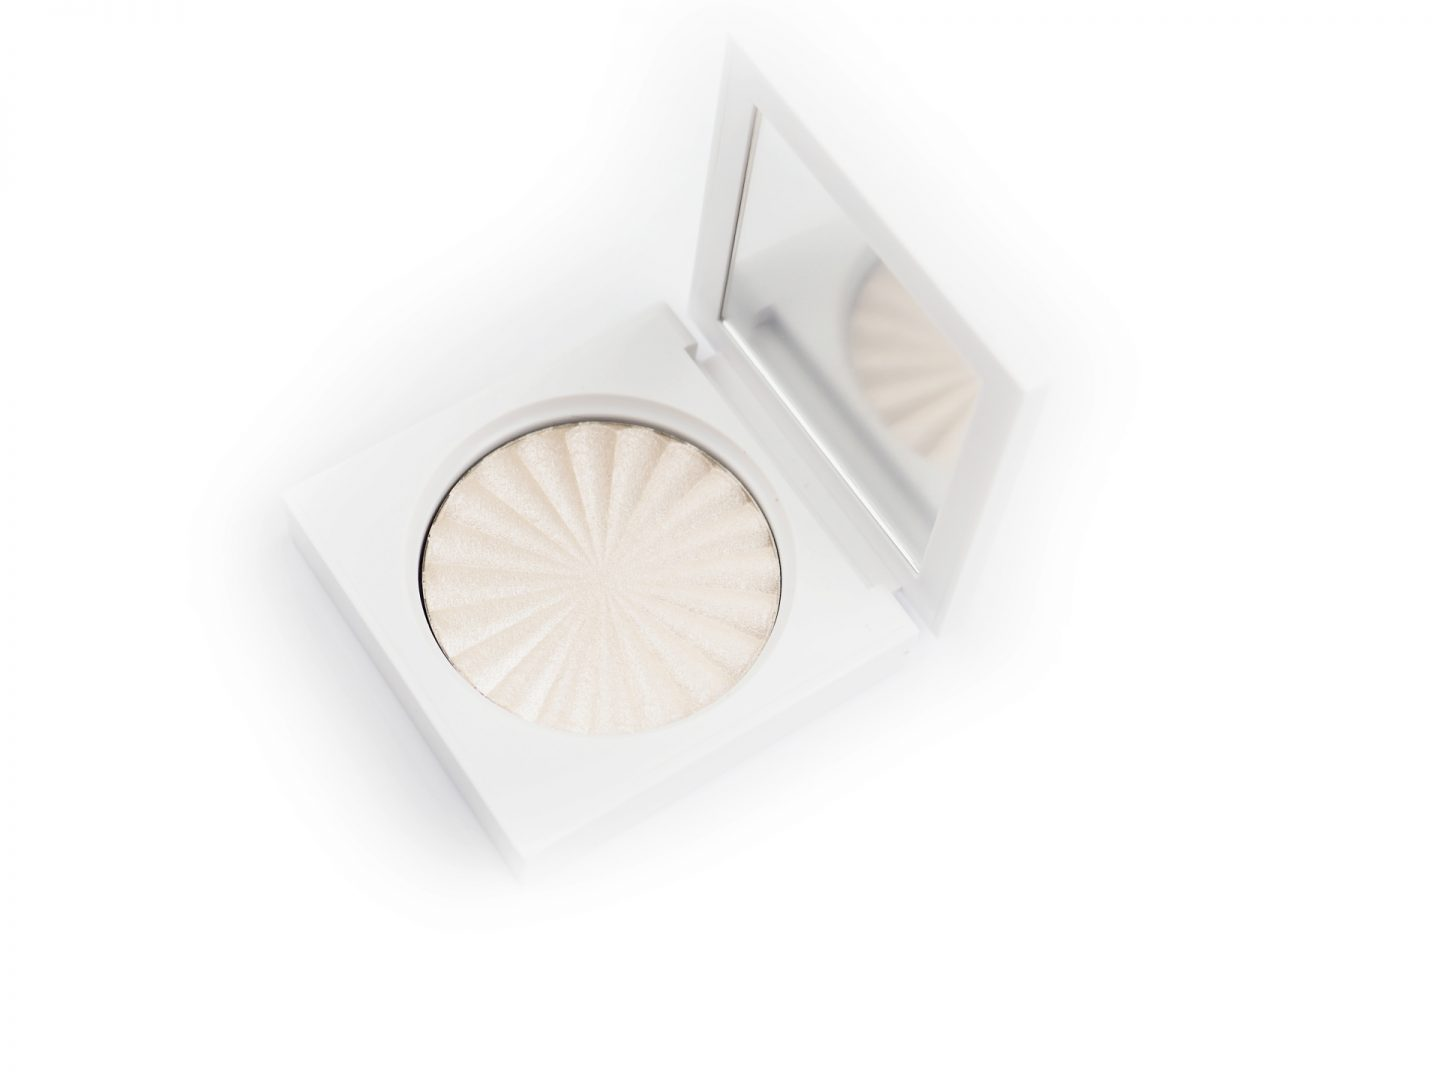 Ofra X NikkieTutorials Glazed Donut Highlighter